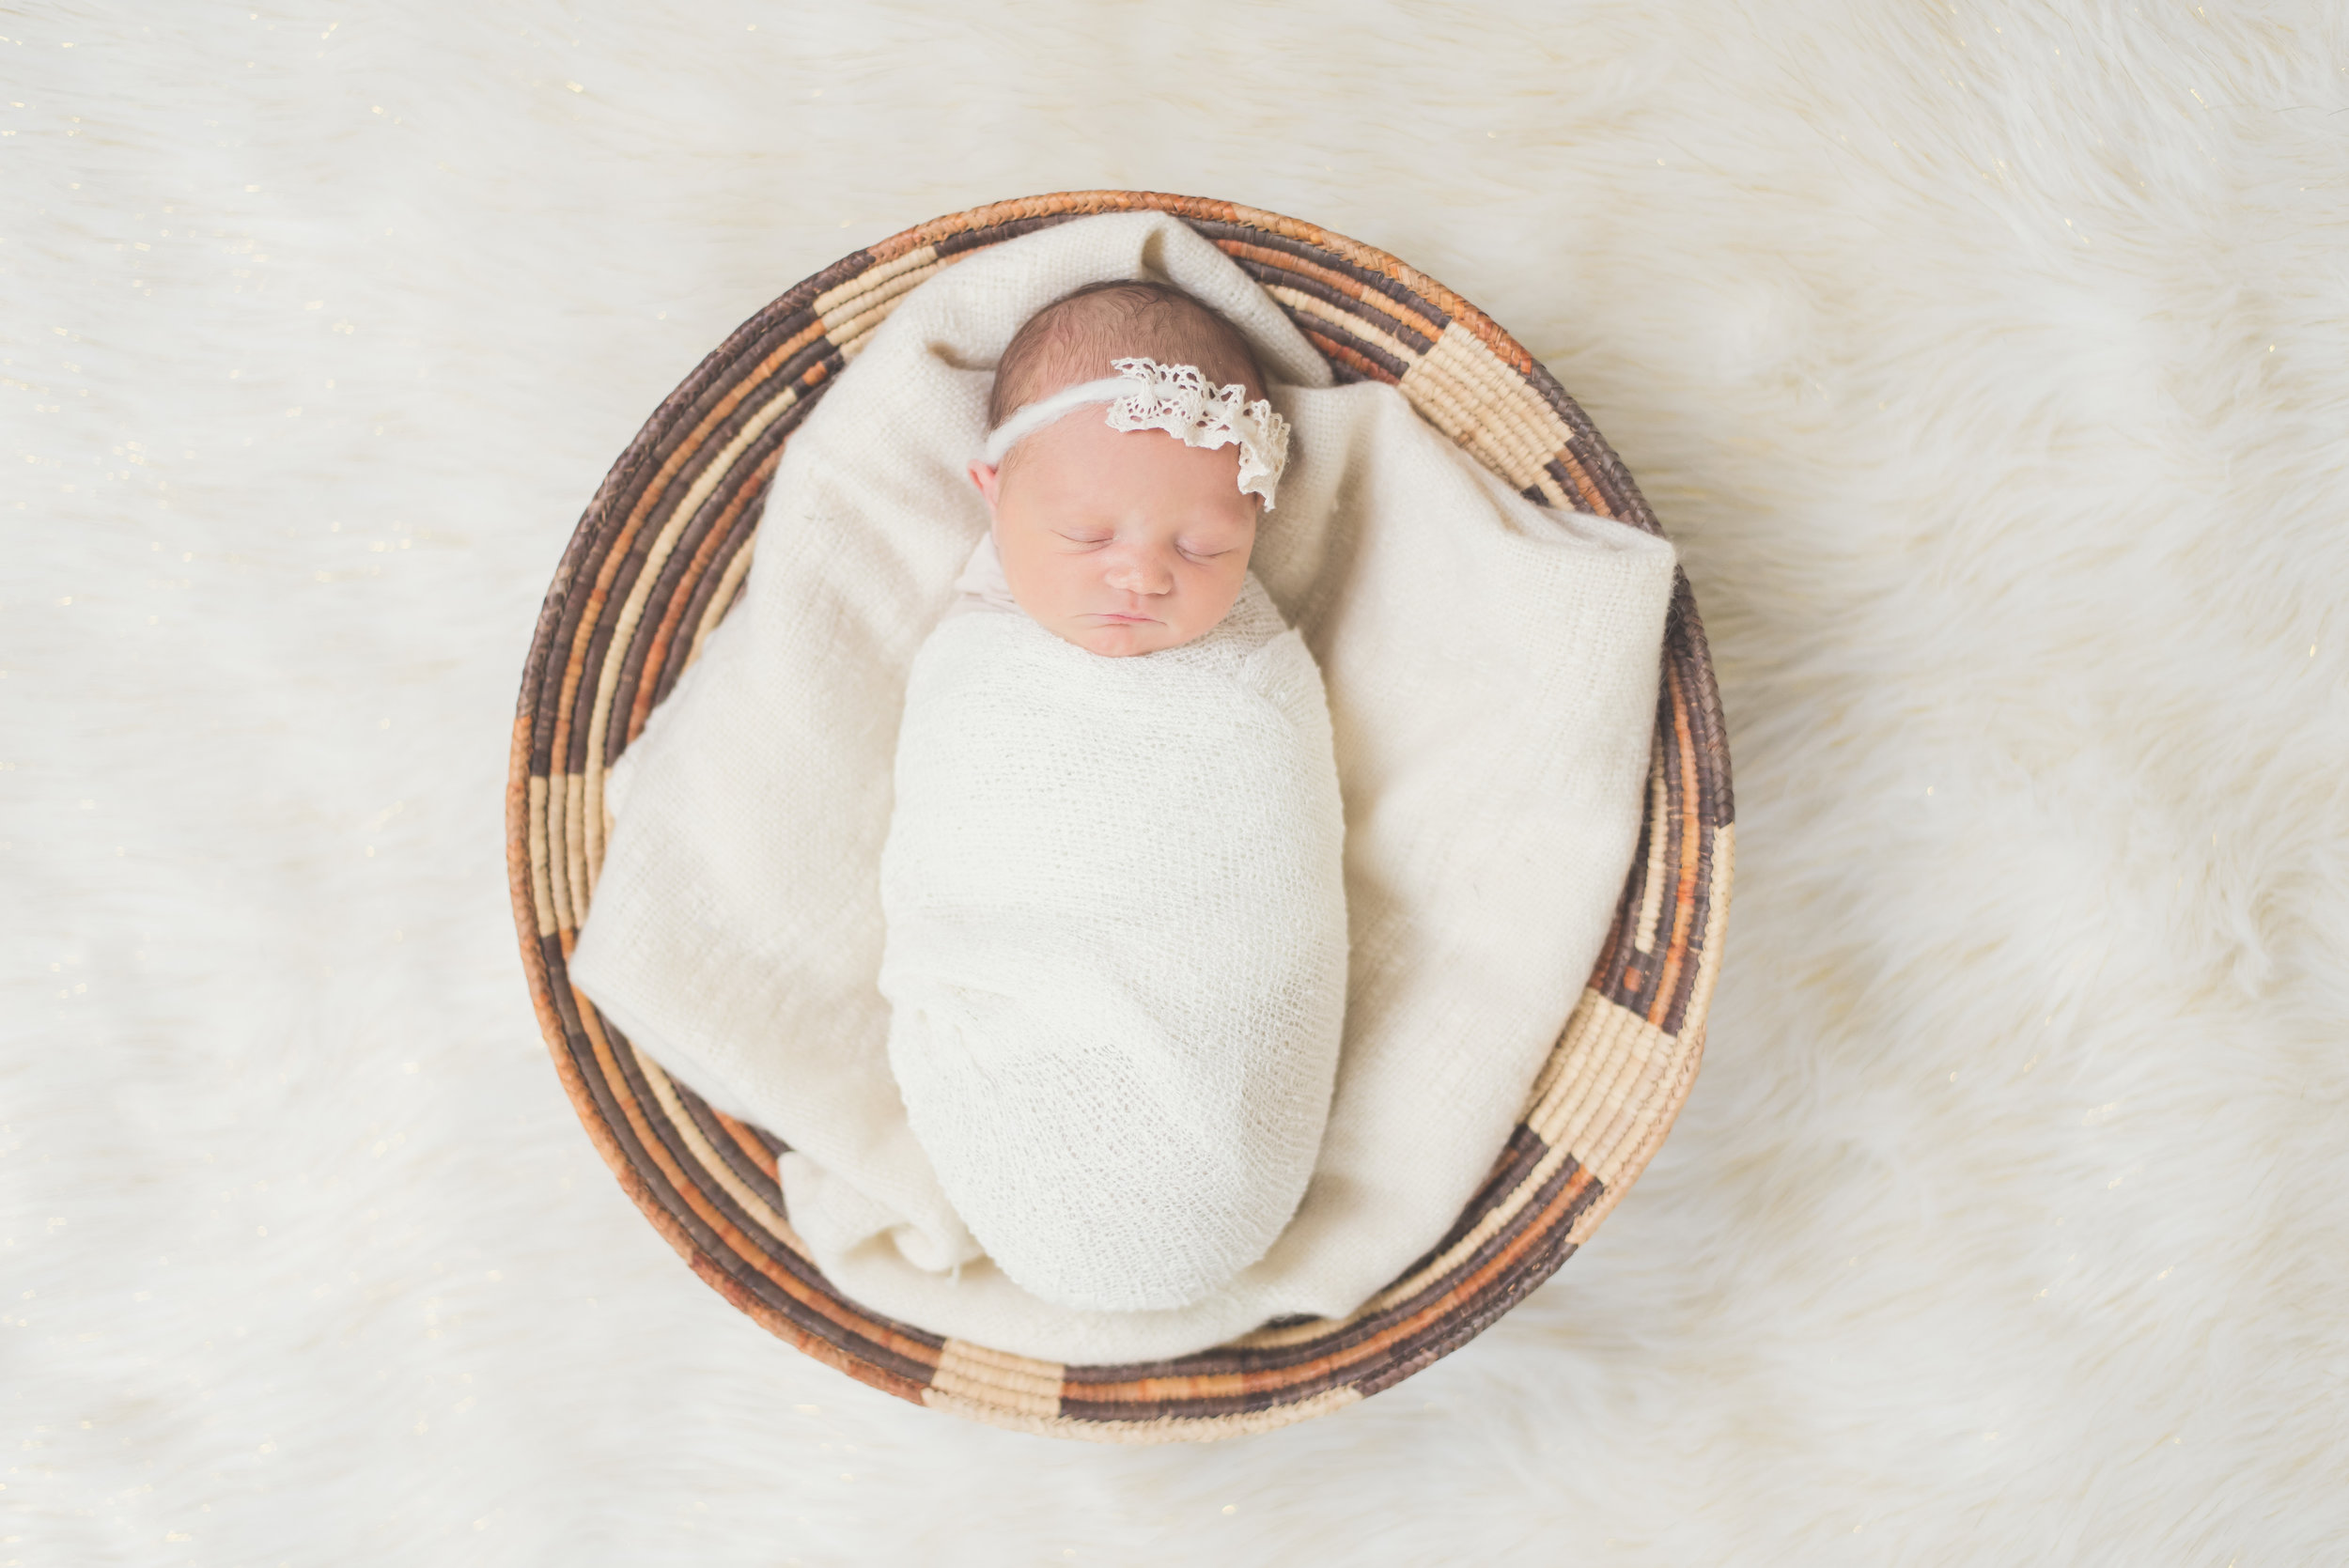 photos by Ariel- newborn in basket from above